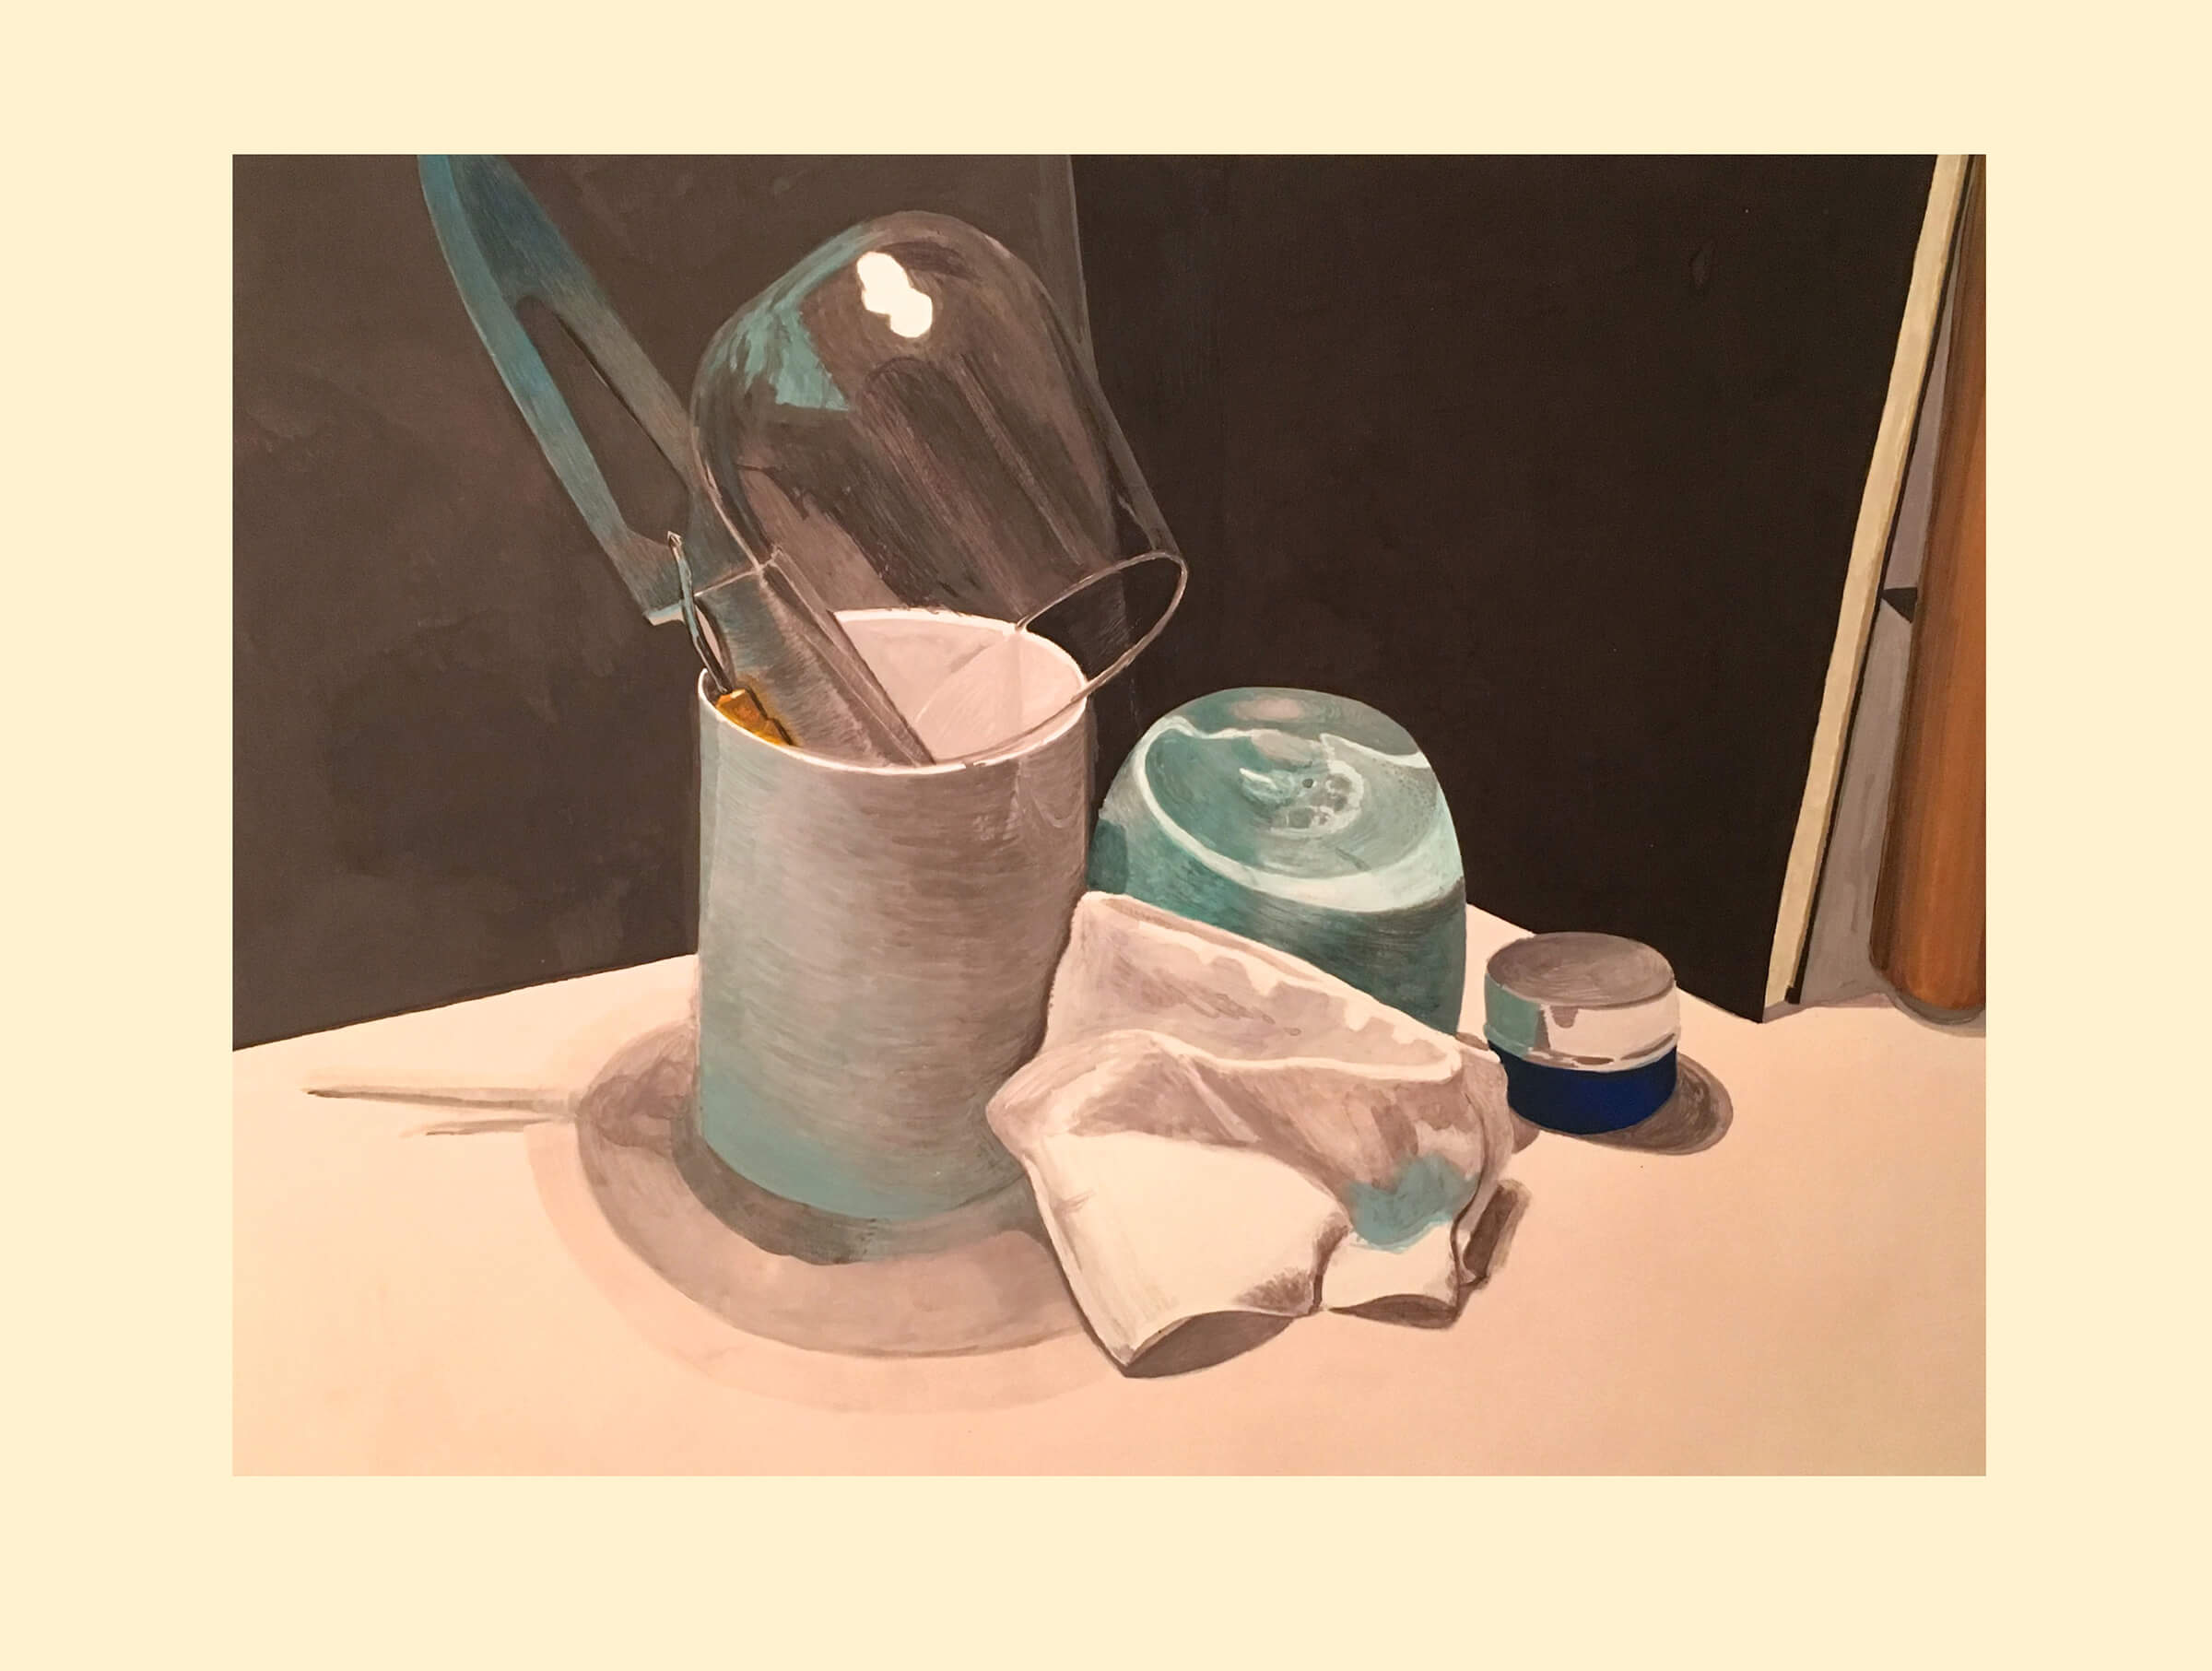 still-life traditional painting of a knife and glass in a cylindrical container